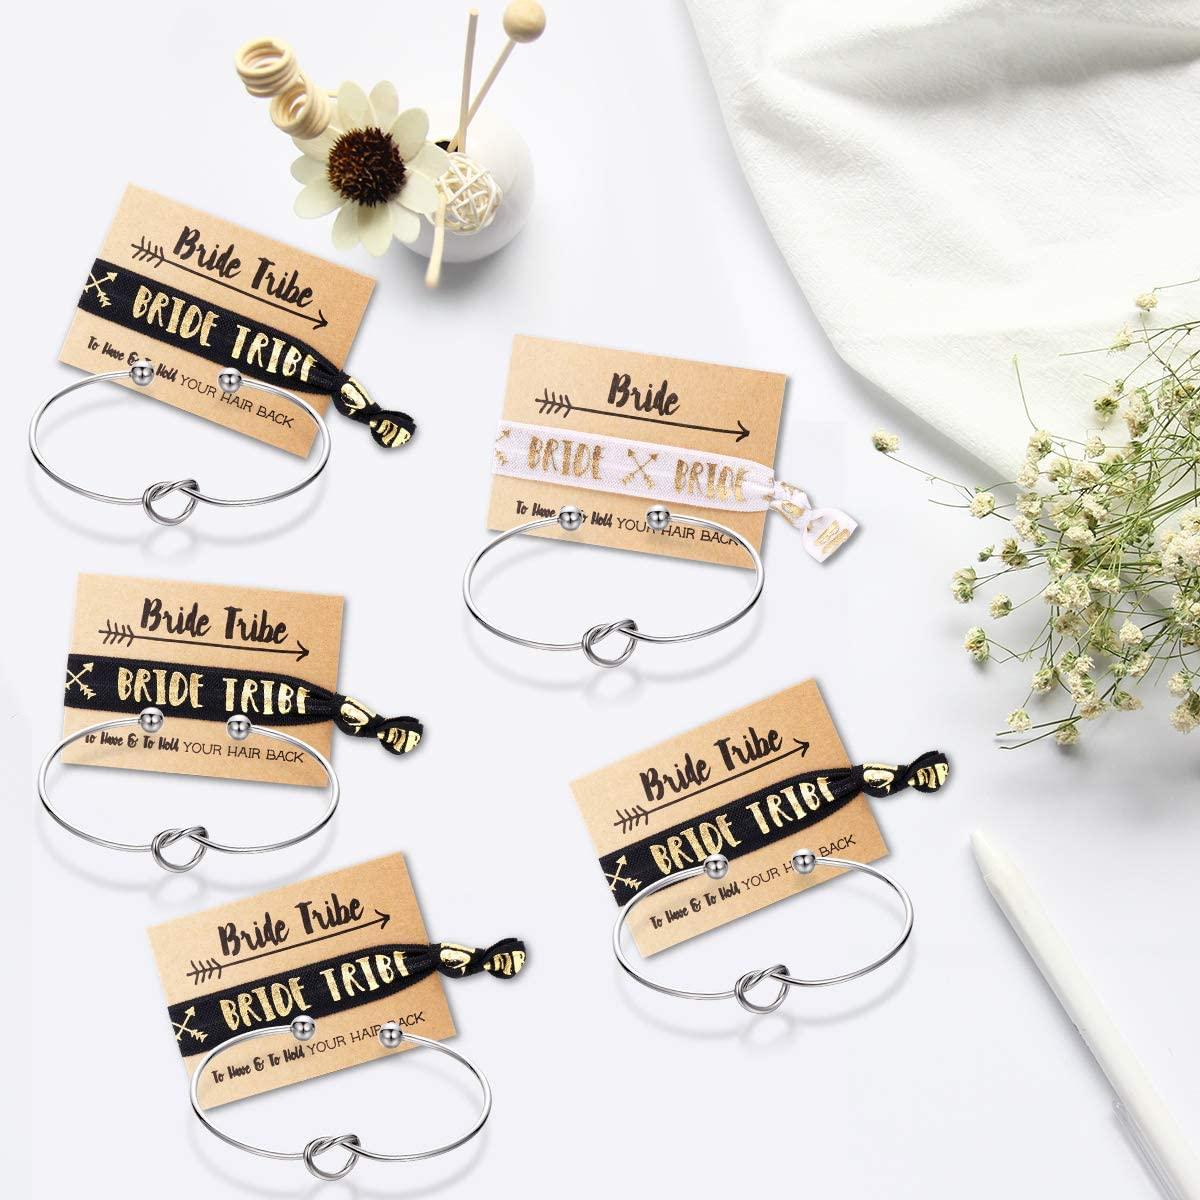 Bridesmaid bracelets-Ikooo 5 pcs Love Knot Open Bangle With Bride Tribe Hair tie for Best Friend BFF of the Bride wedding Gift